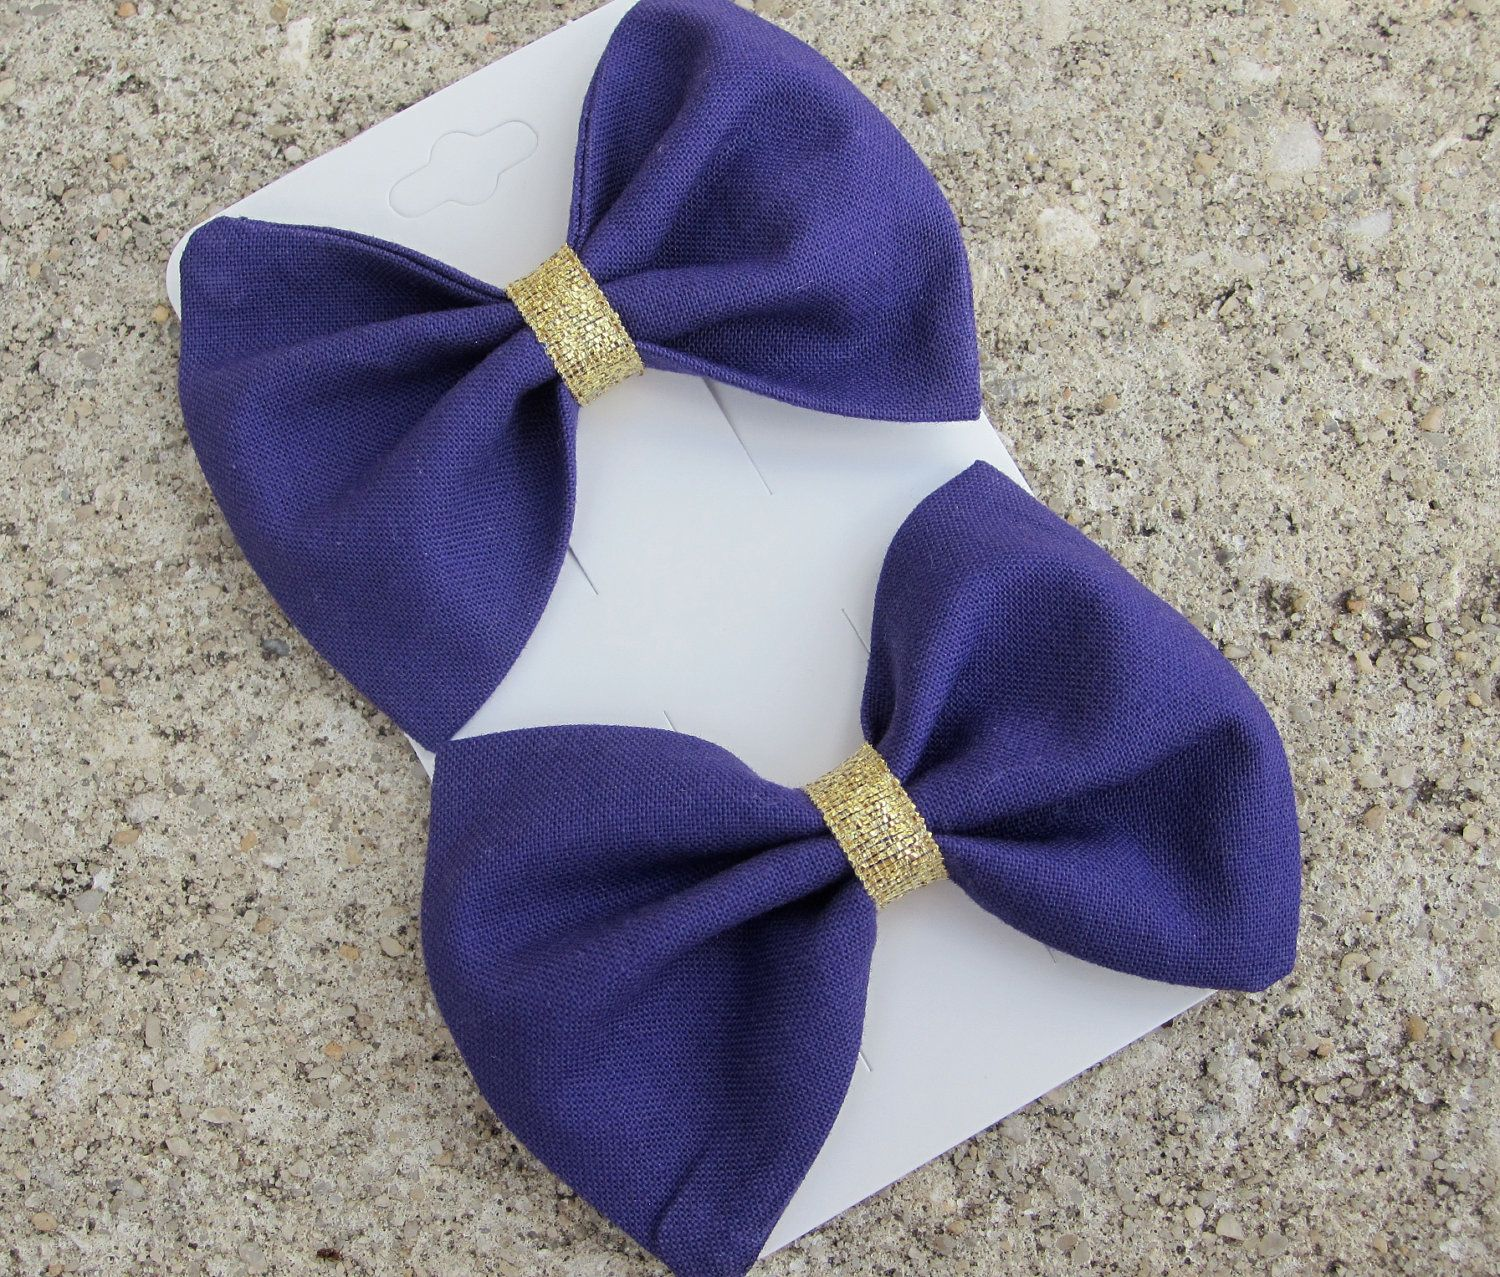 Fabric Bow Tie Hair Bow Set: Purple and Gold Hand Sewn $8